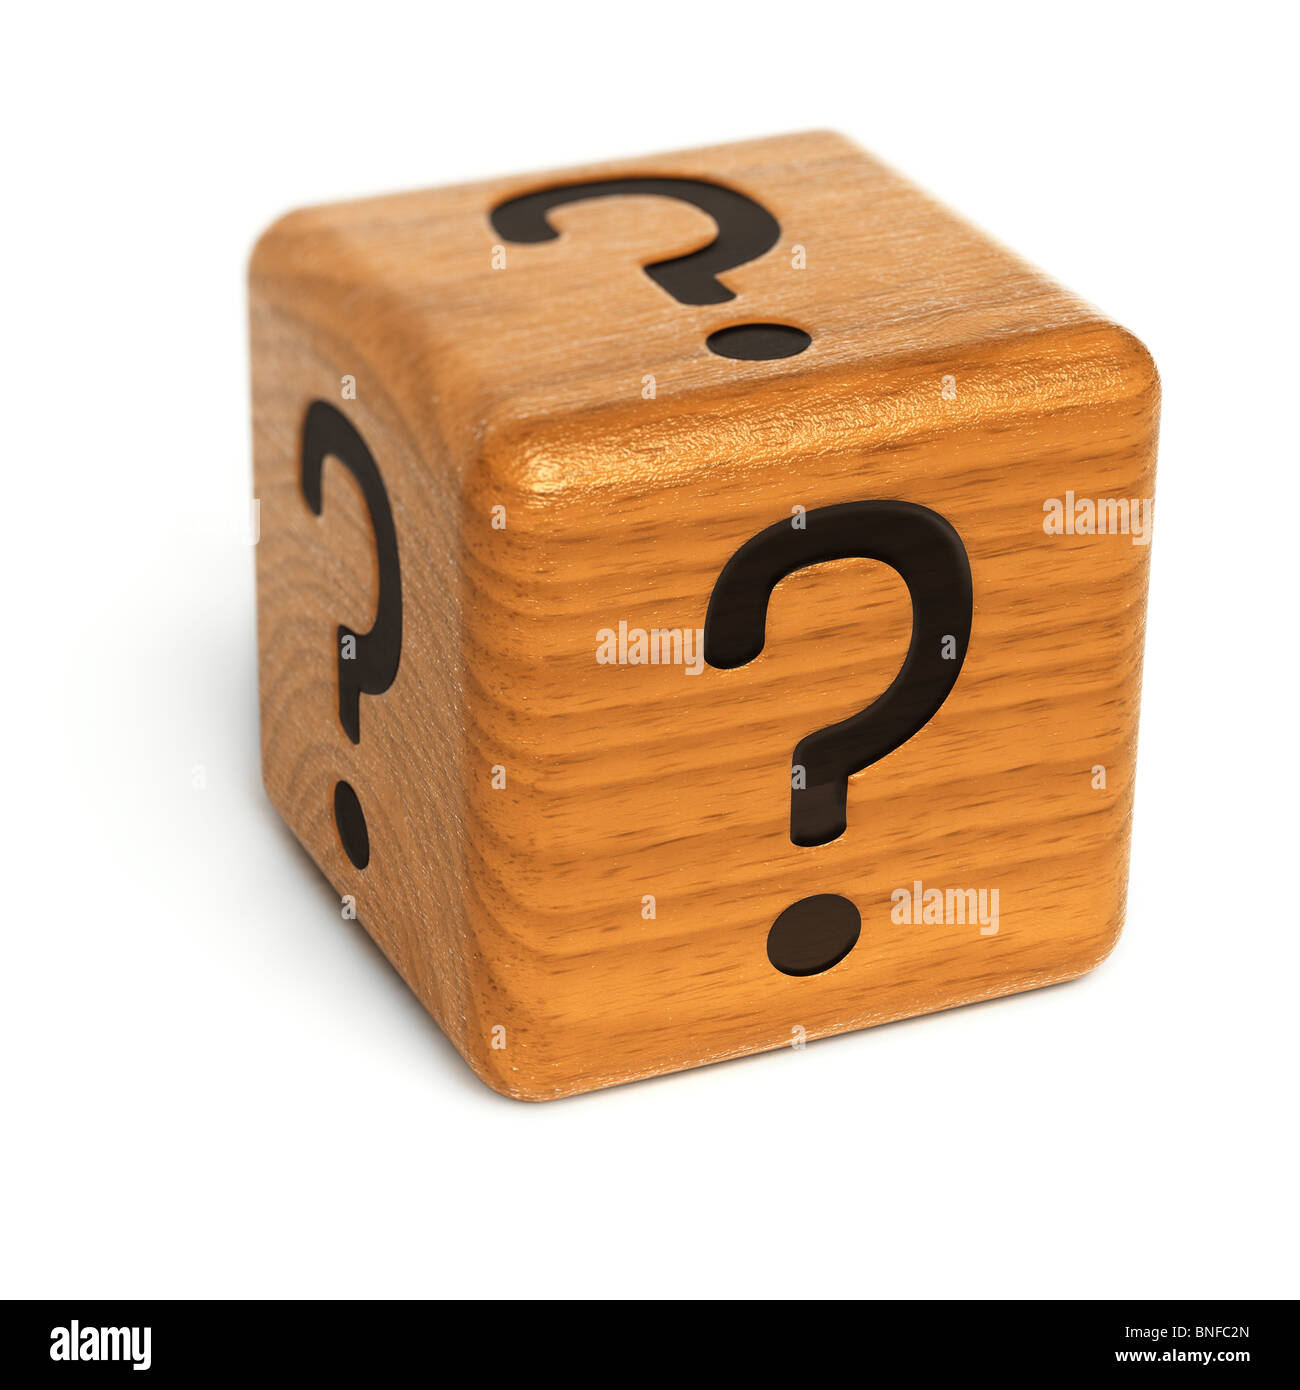 Wooden dice with question marks - Stock Image